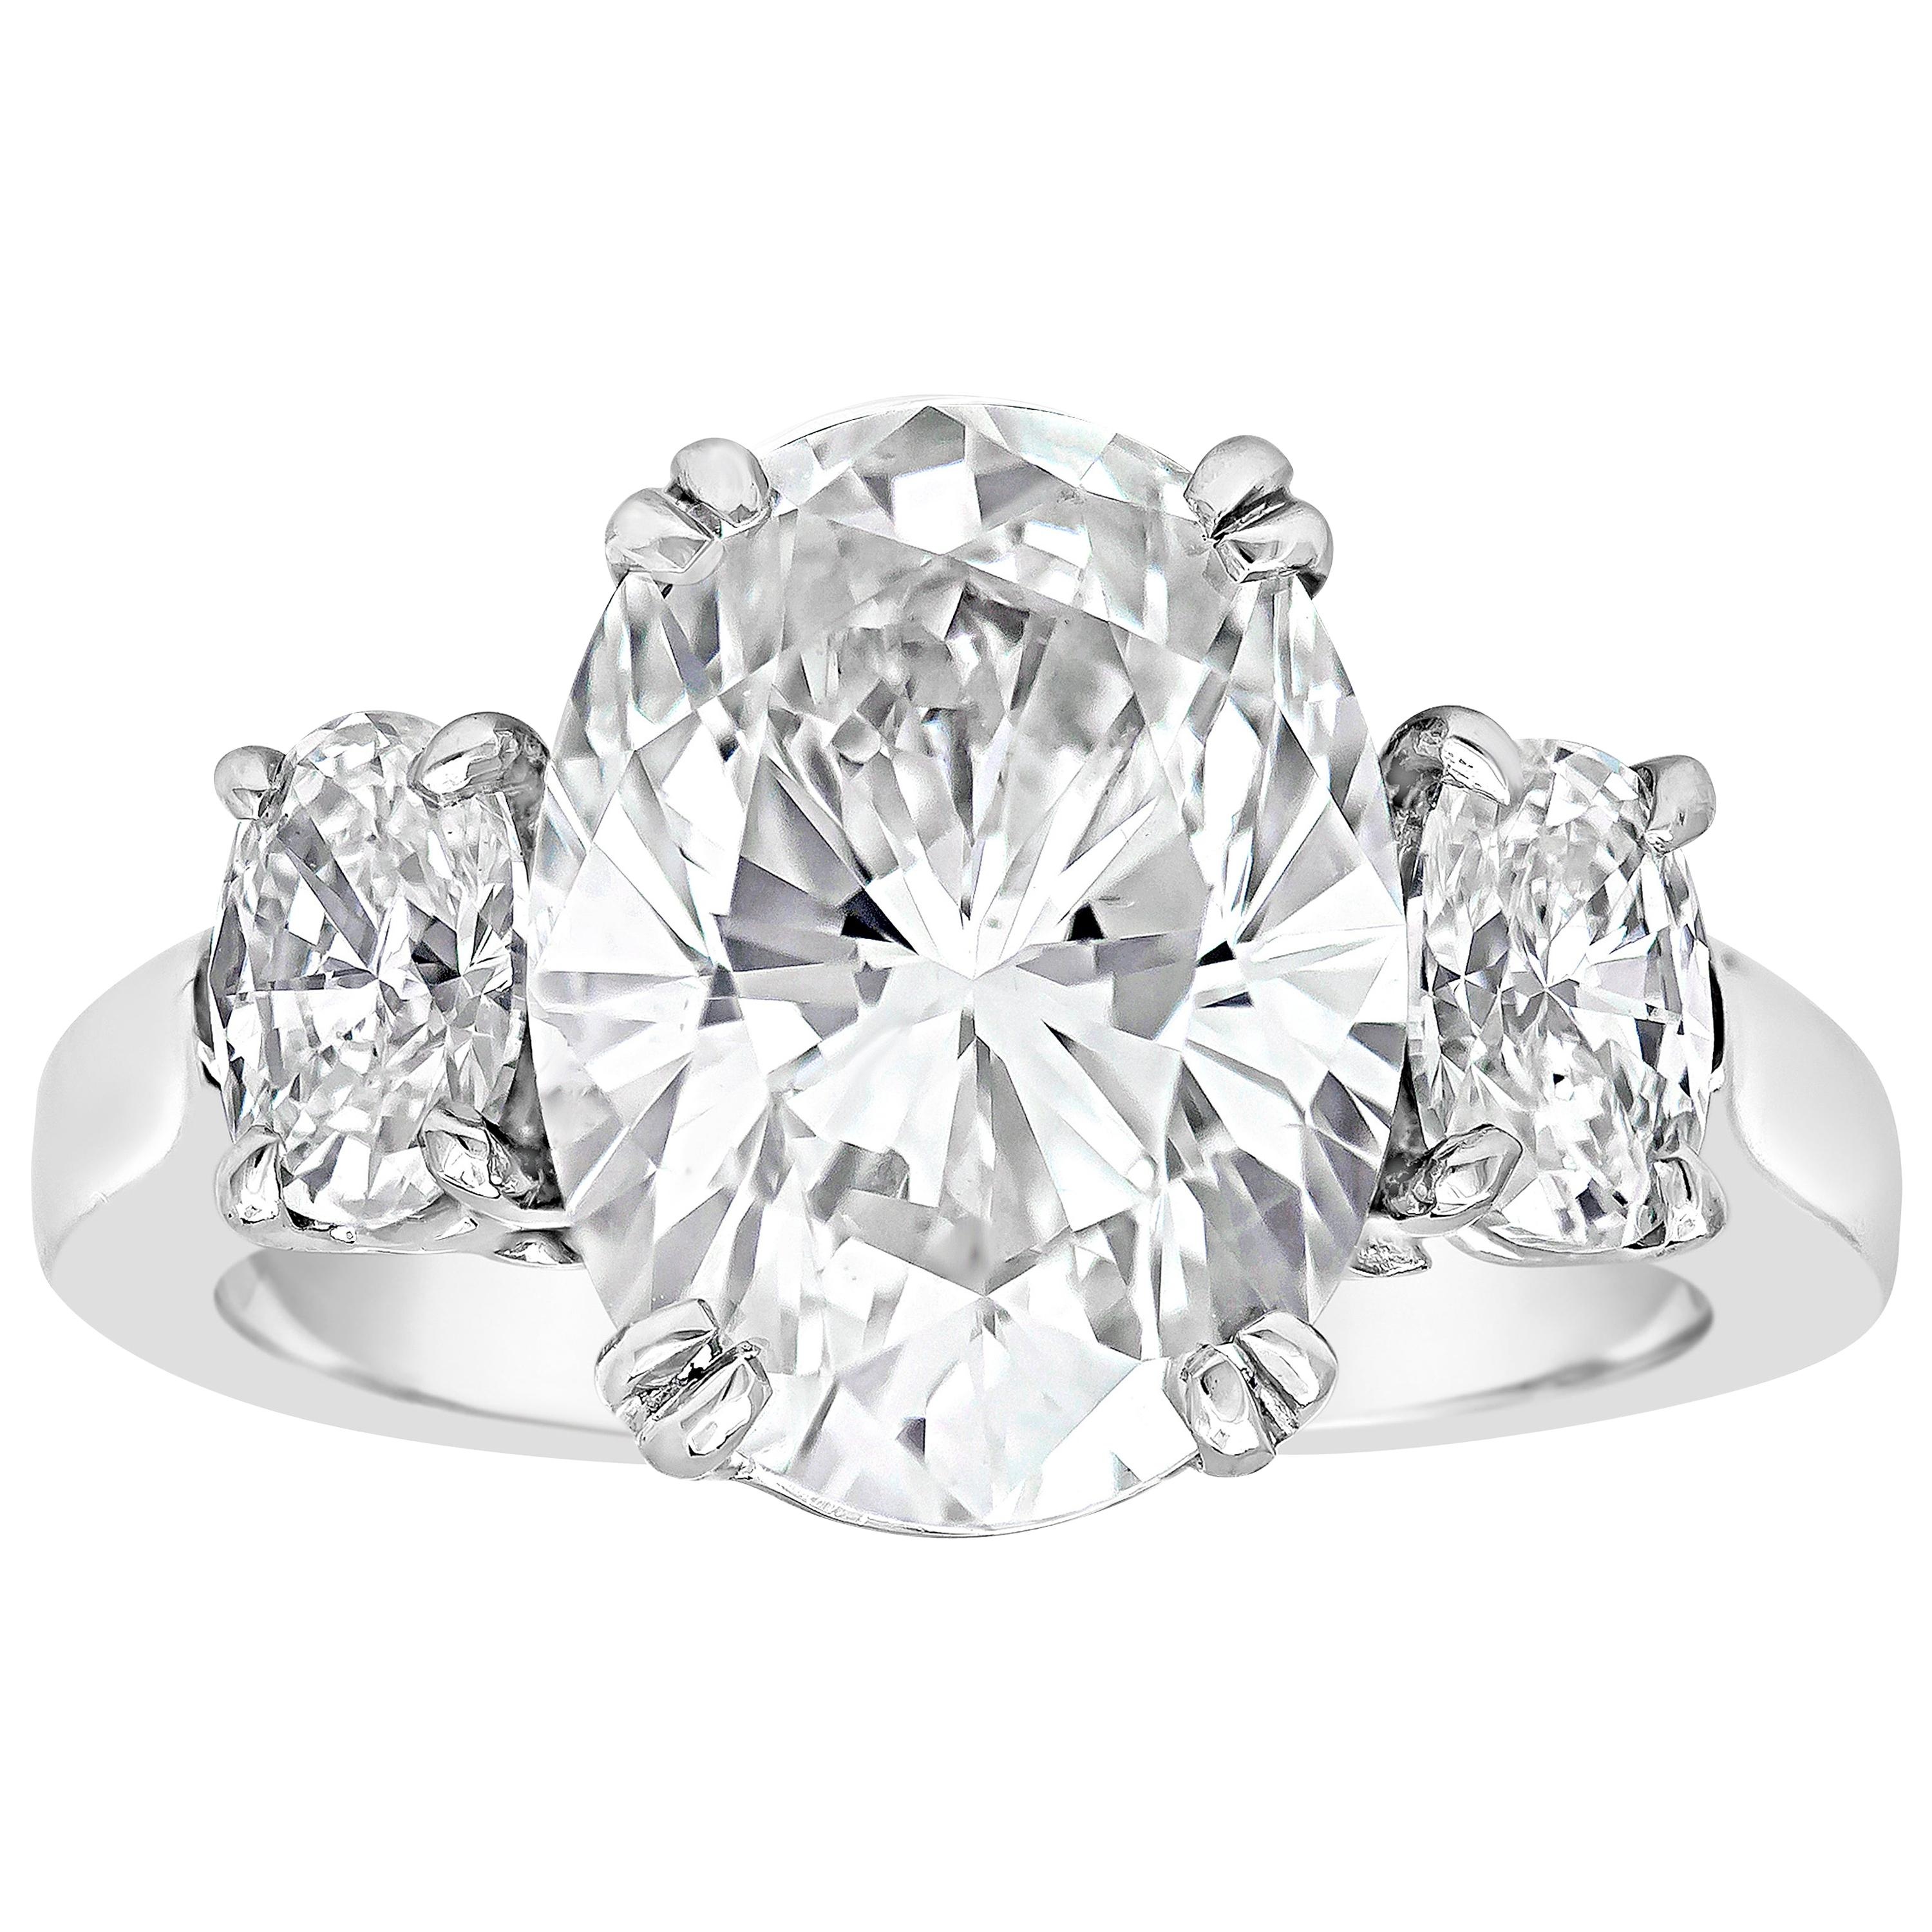 d246596498a3e Antique and Vintage Rings and Diamond Rings For Sale at 1stdibs